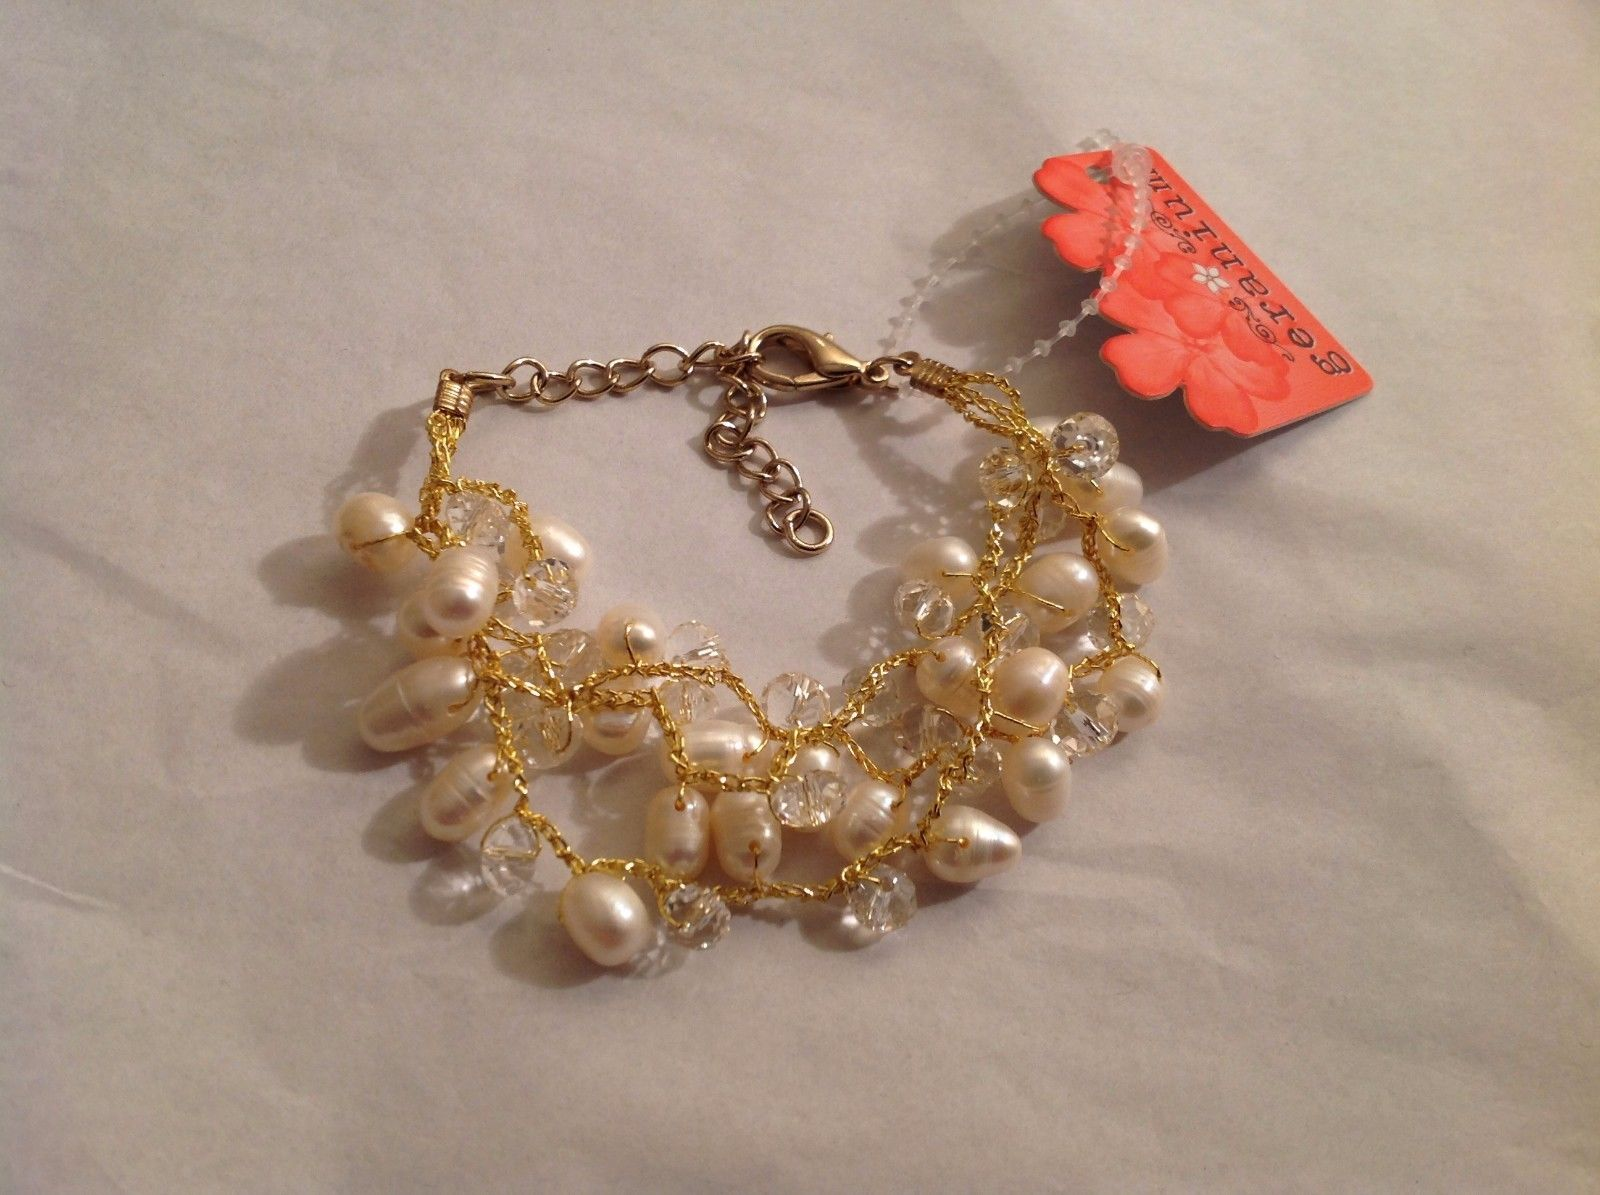 NEW Geranium Gold Toned Multi Strand Necklace Genuine Pearls Adjustable Lobster